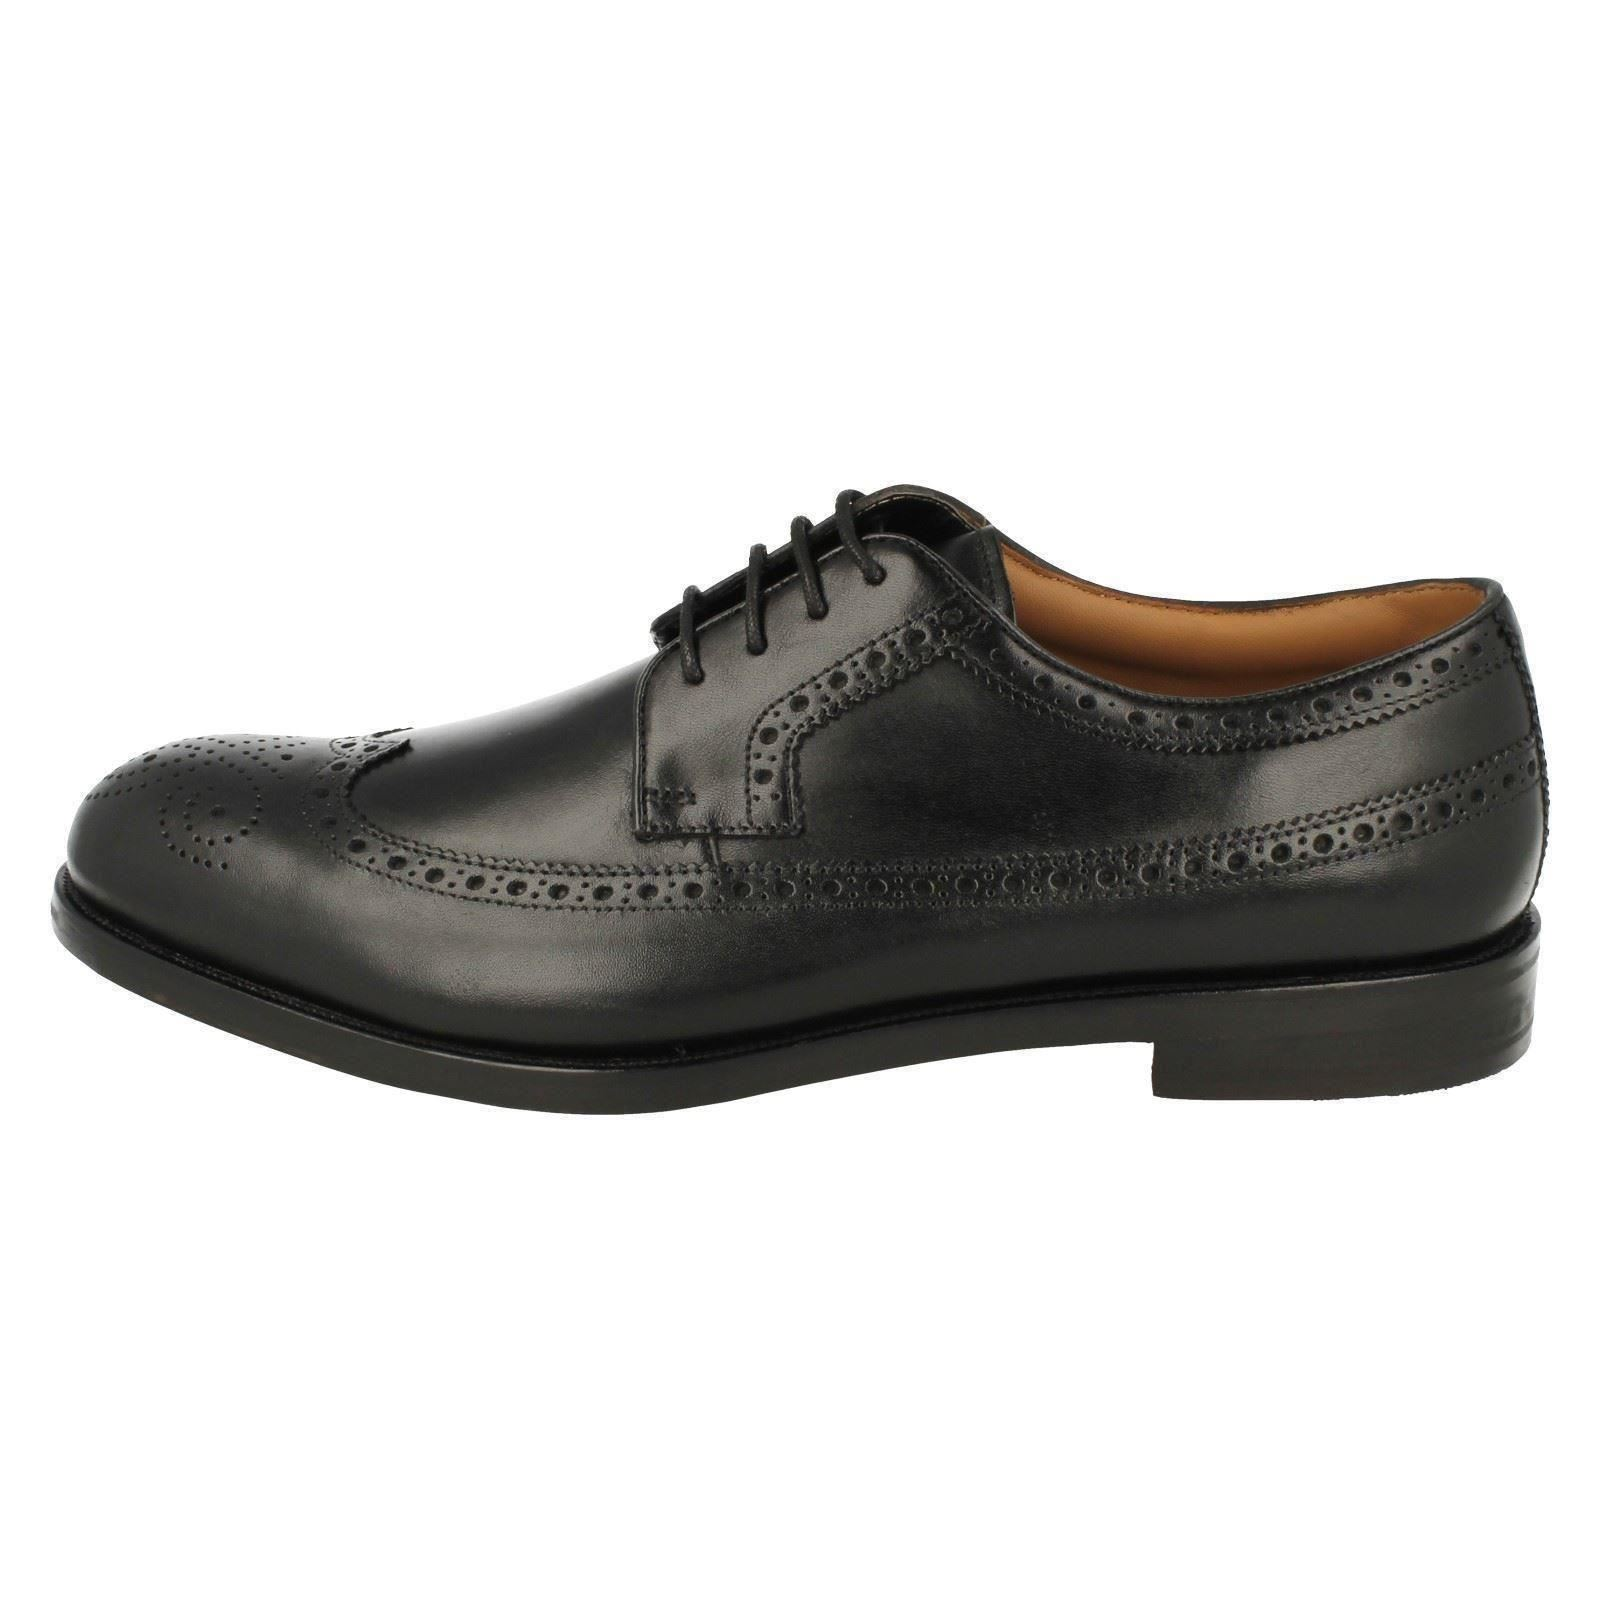 Herren Clarks Brogue Style Lace Lace Lace Up Leder Formal Schuhes Coling Limit 2c67e0